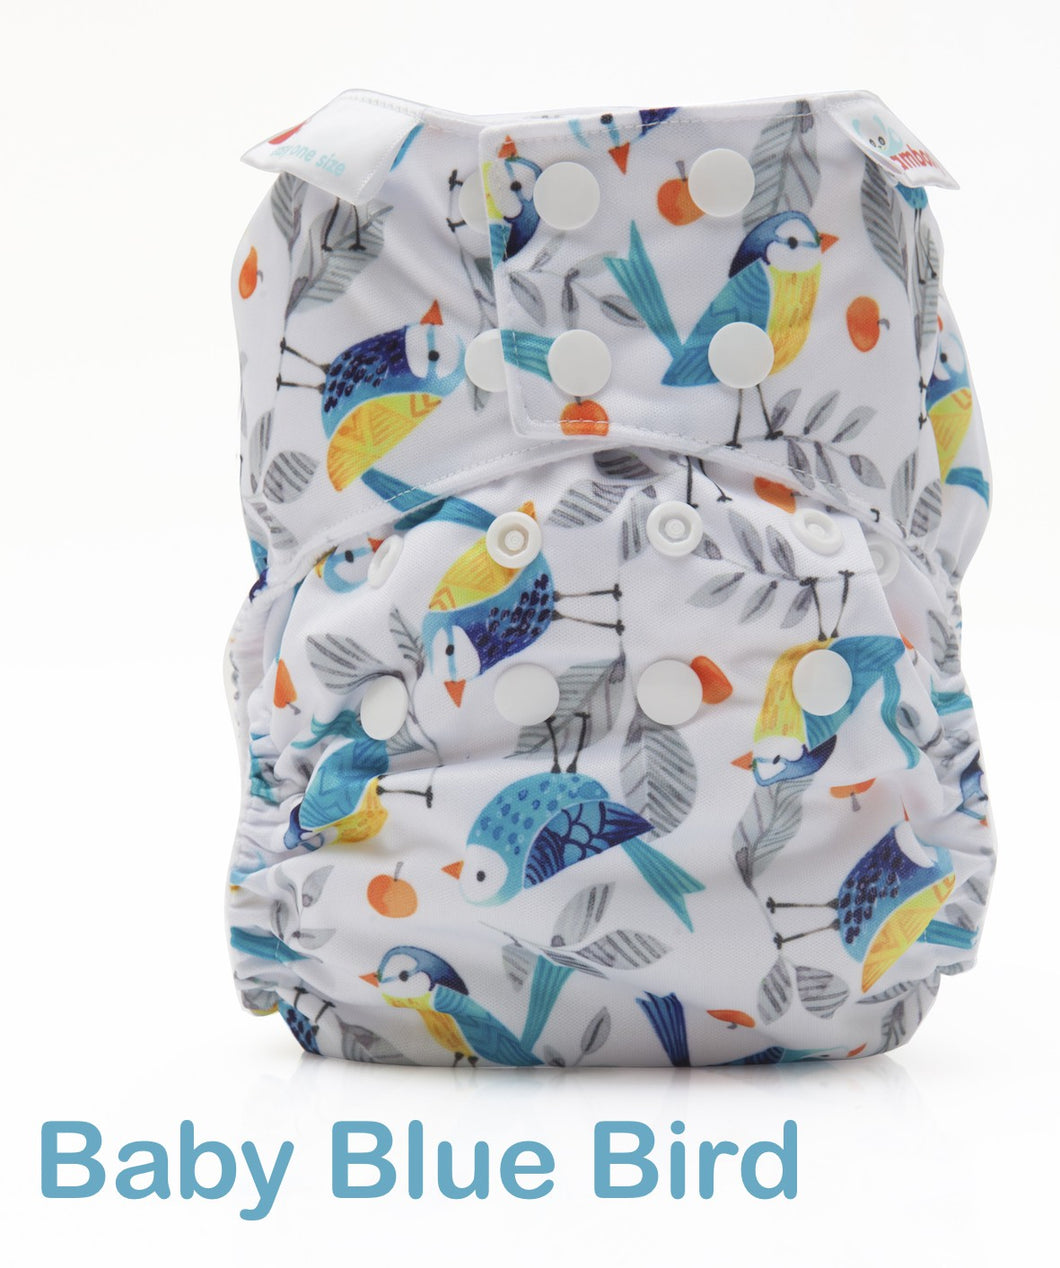 Bambooty One Size Nappy Cover Baby Blue Bird print The Cloth Nappy Company Malta